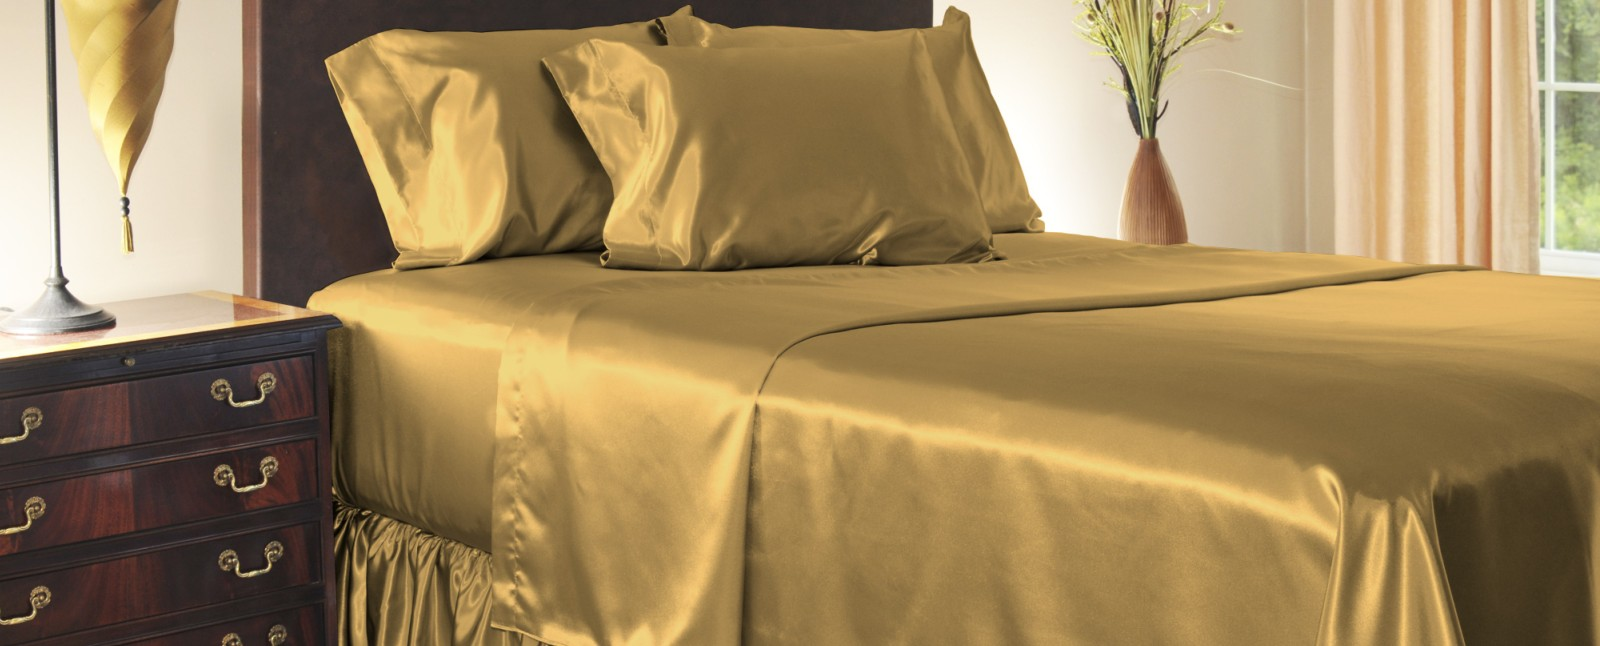 Bridal Satin Bedding